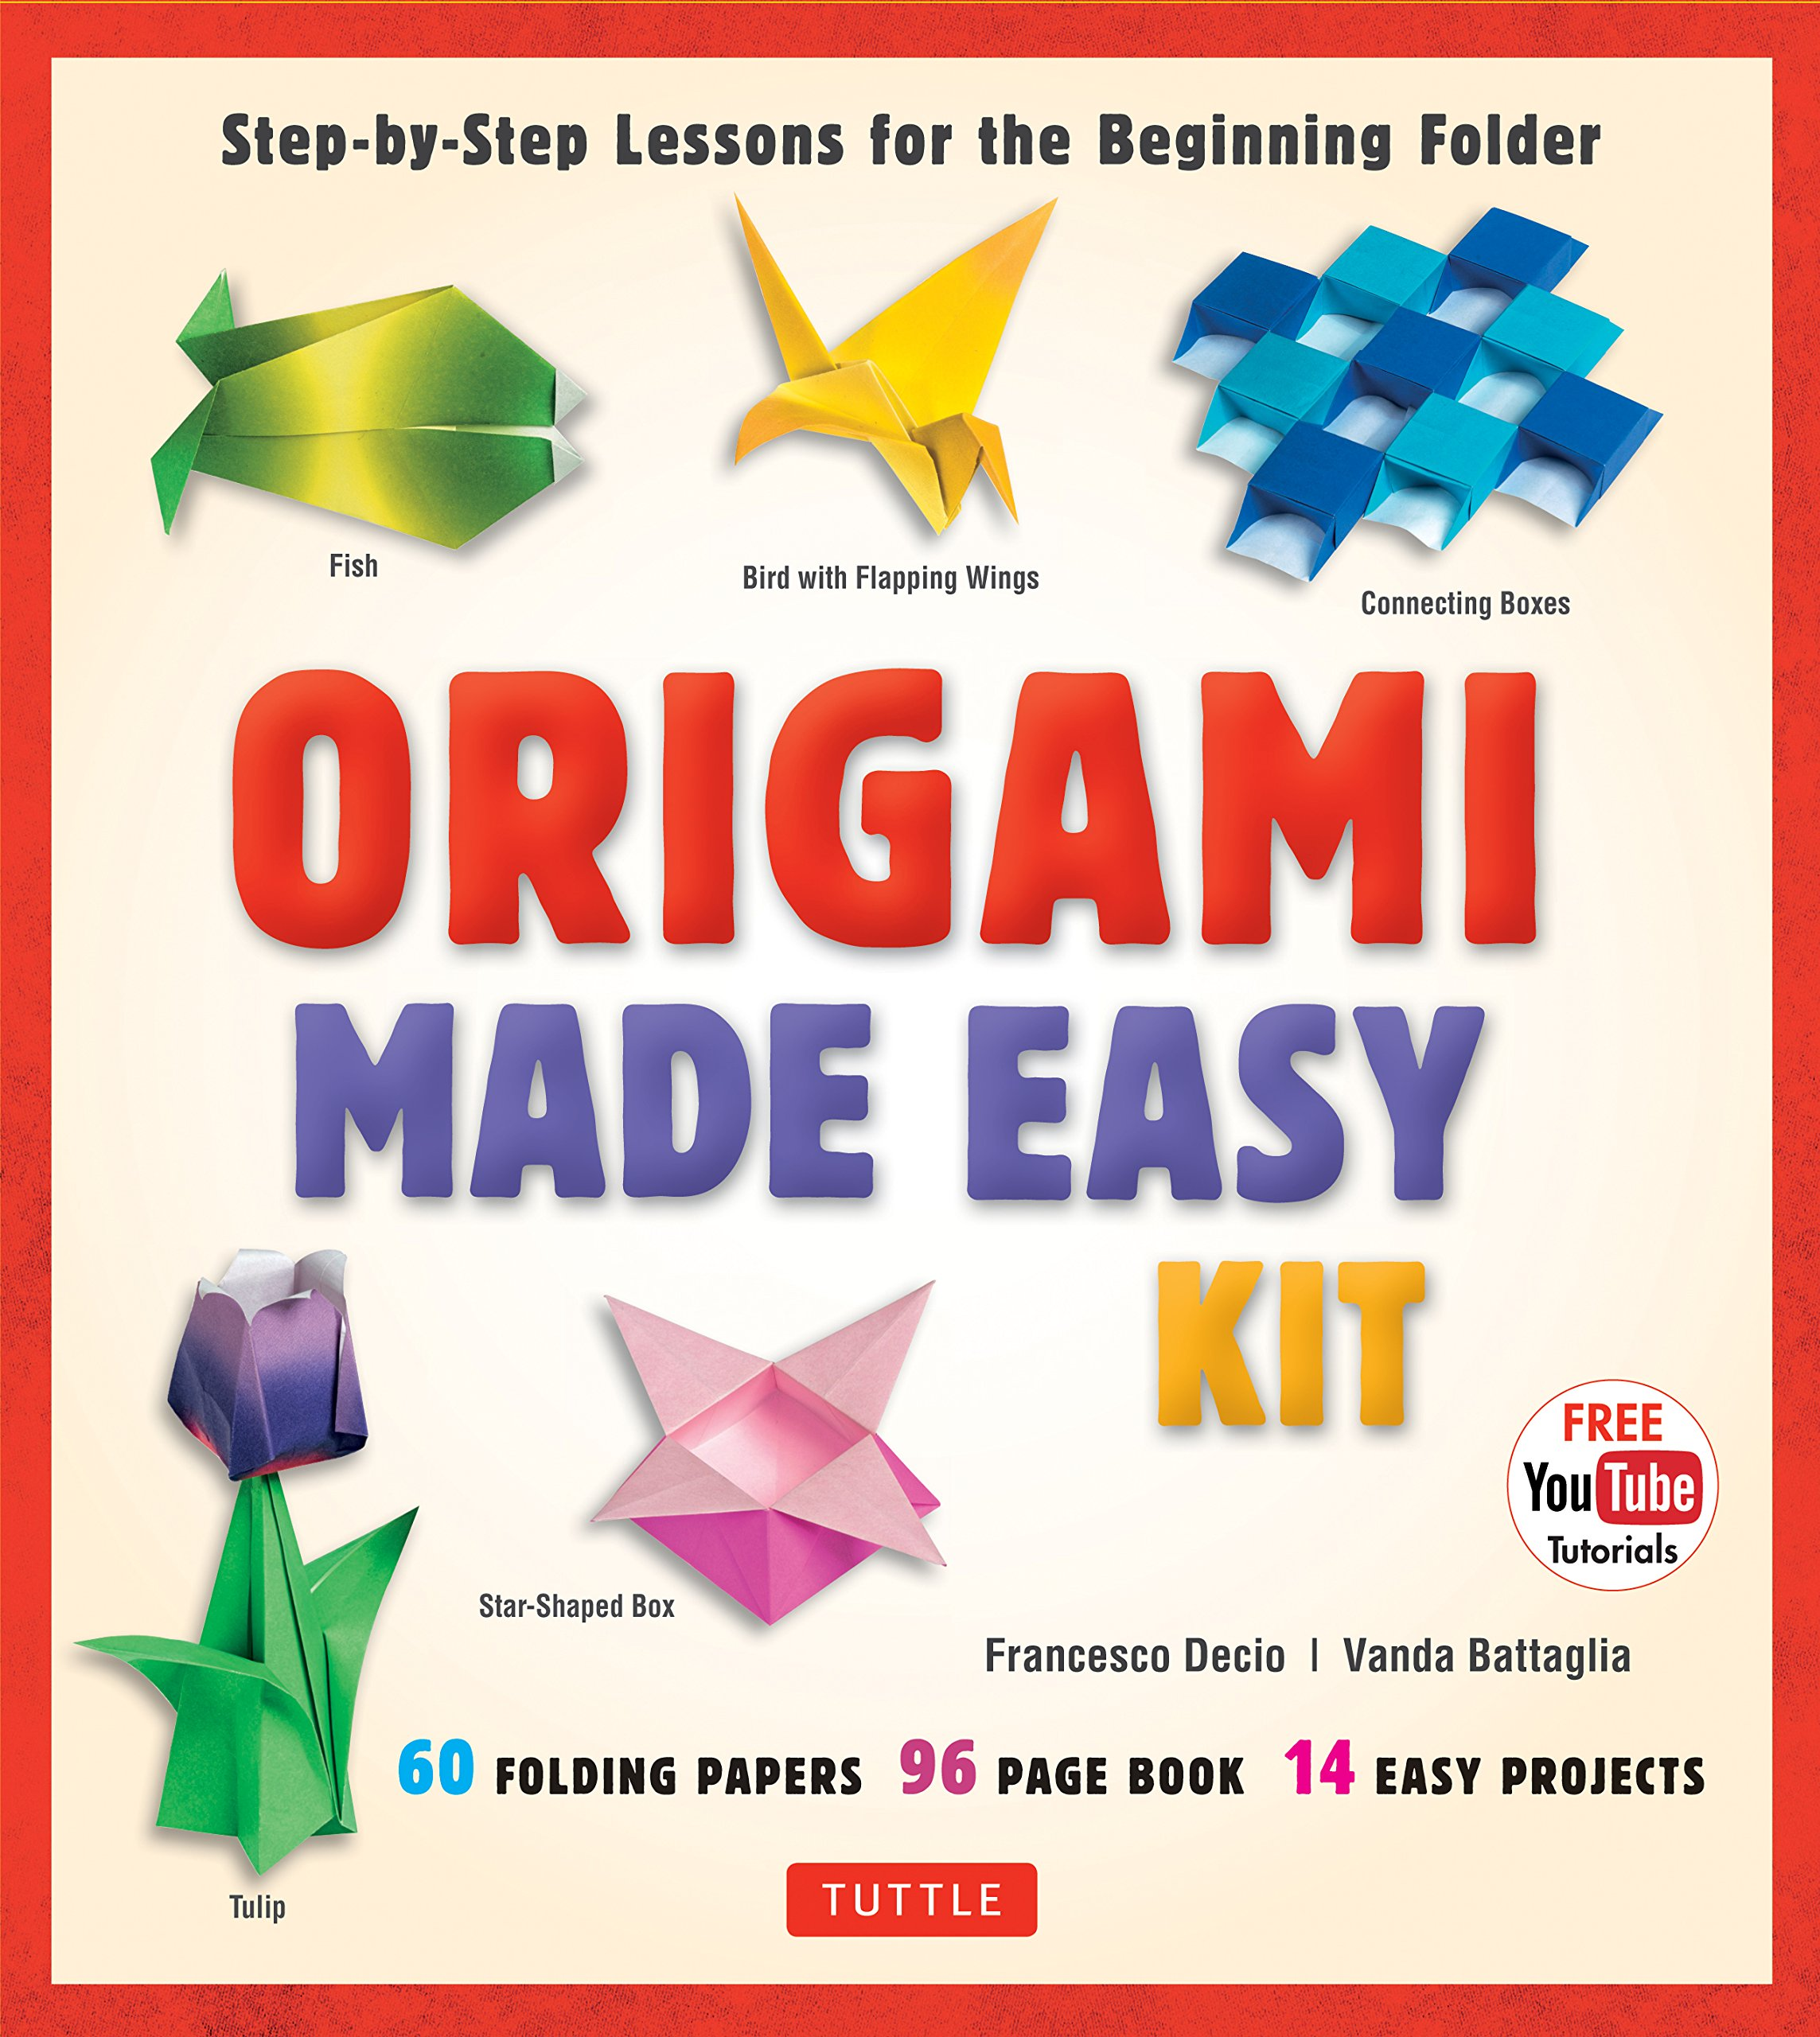 Origami Made Easy Kit: Step-by-Step Lessons for the Beginning Folder: Kit with Origami Book, 14 Projects, 60 Origami Papers, & Video Tutorial